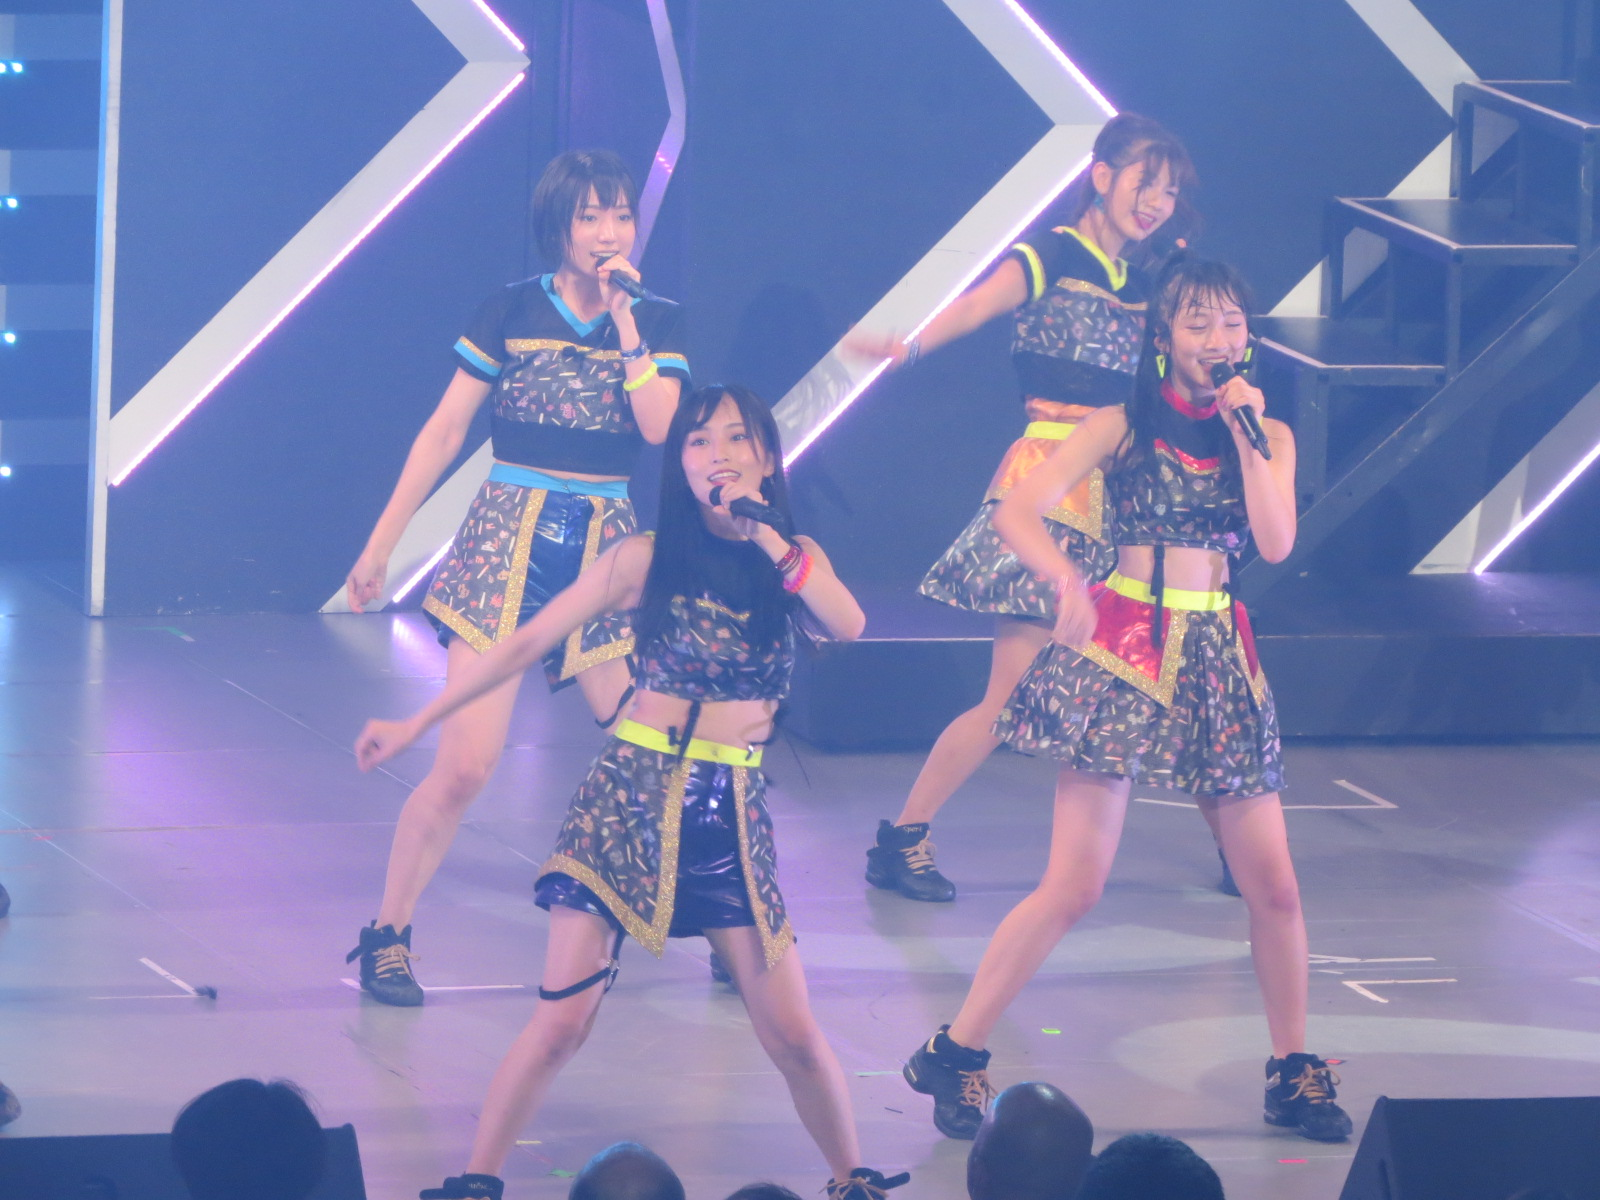 NMB48 LIVE TOUR 2018 in Summer・石川公演の画像-100